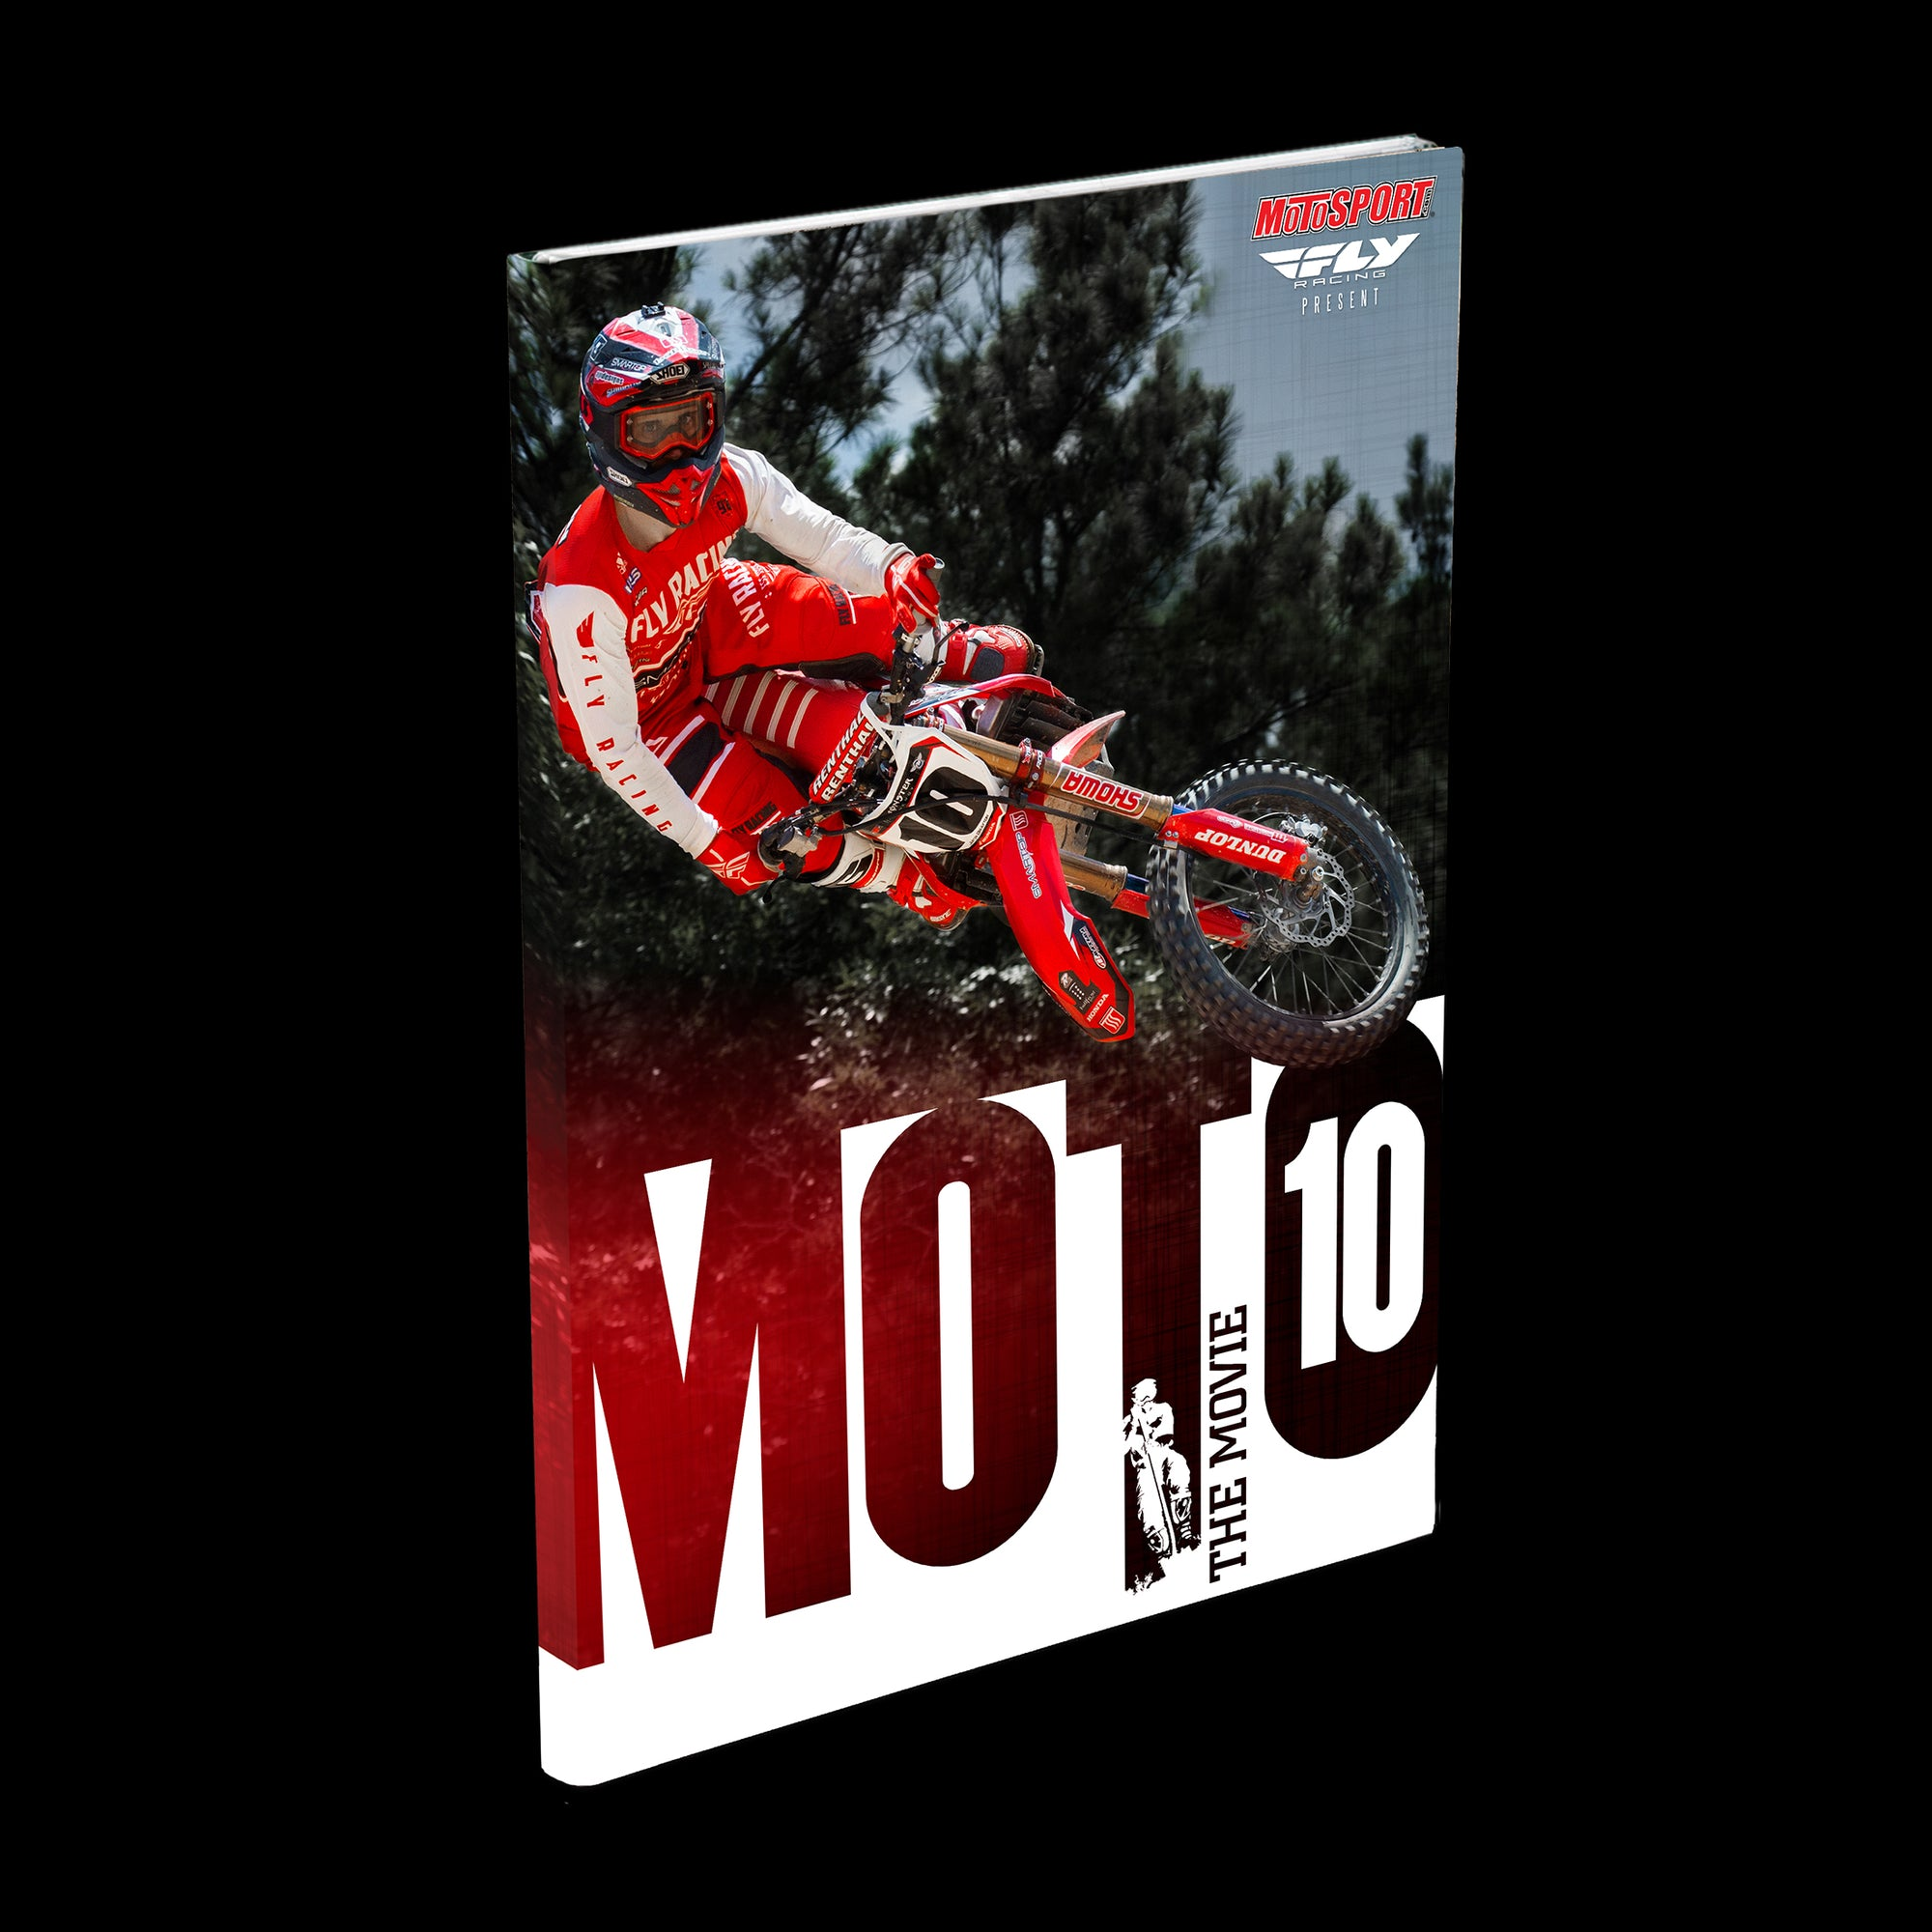 MOTO 10 The Movie